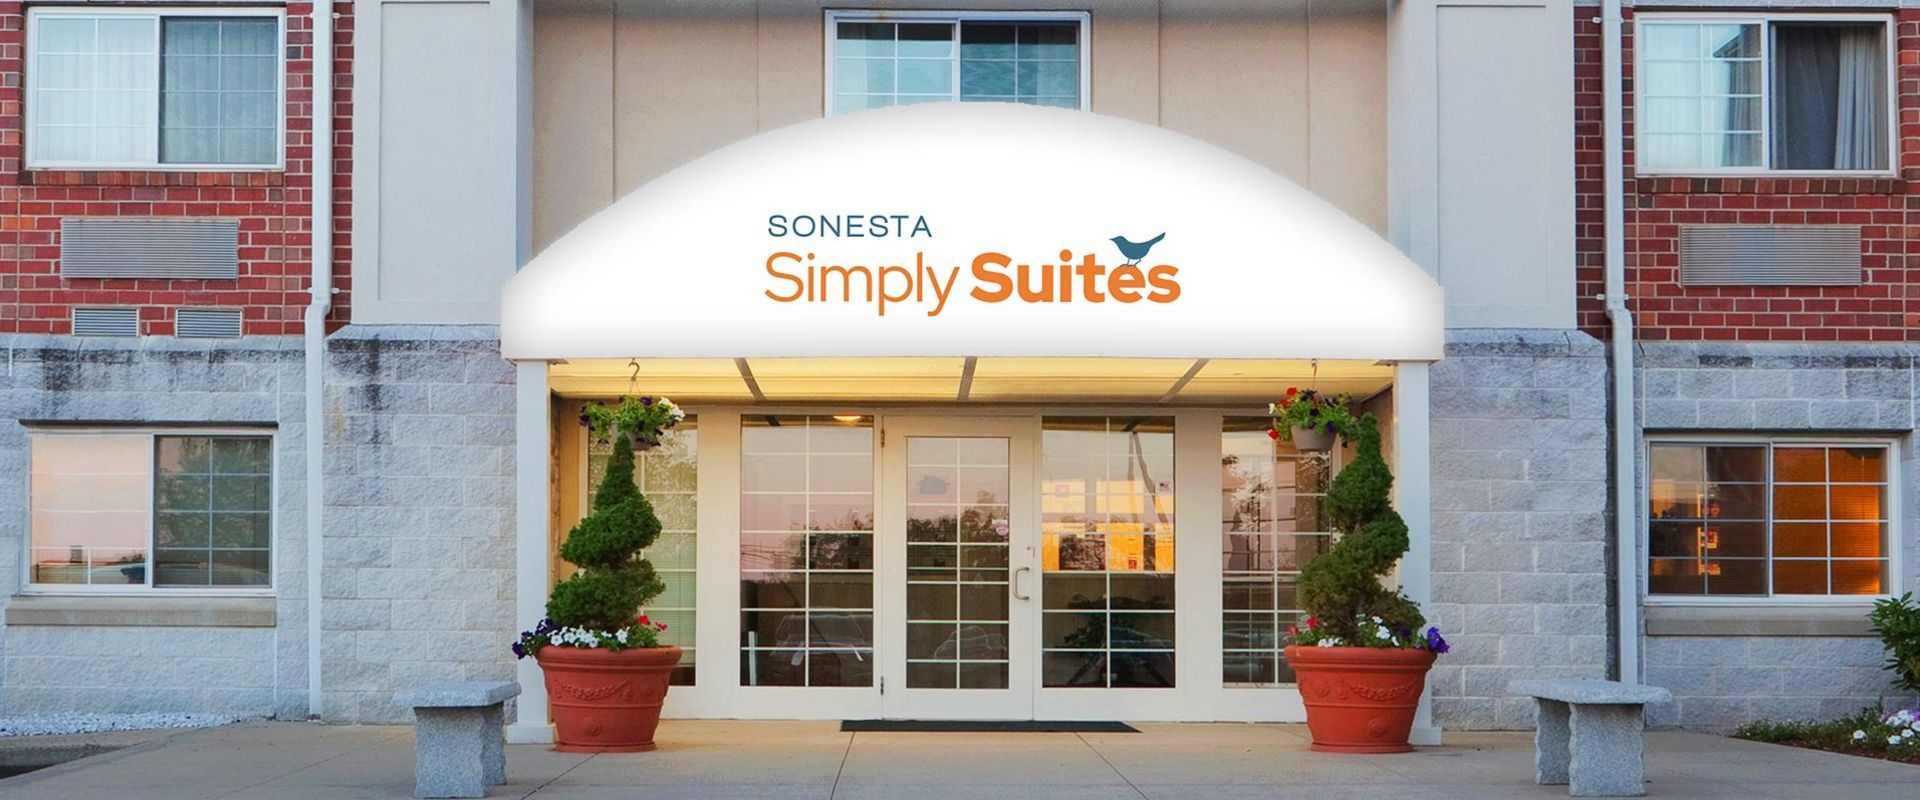 Sonesta Simply Suites Boston Burlington Hotel Exterior Entrance